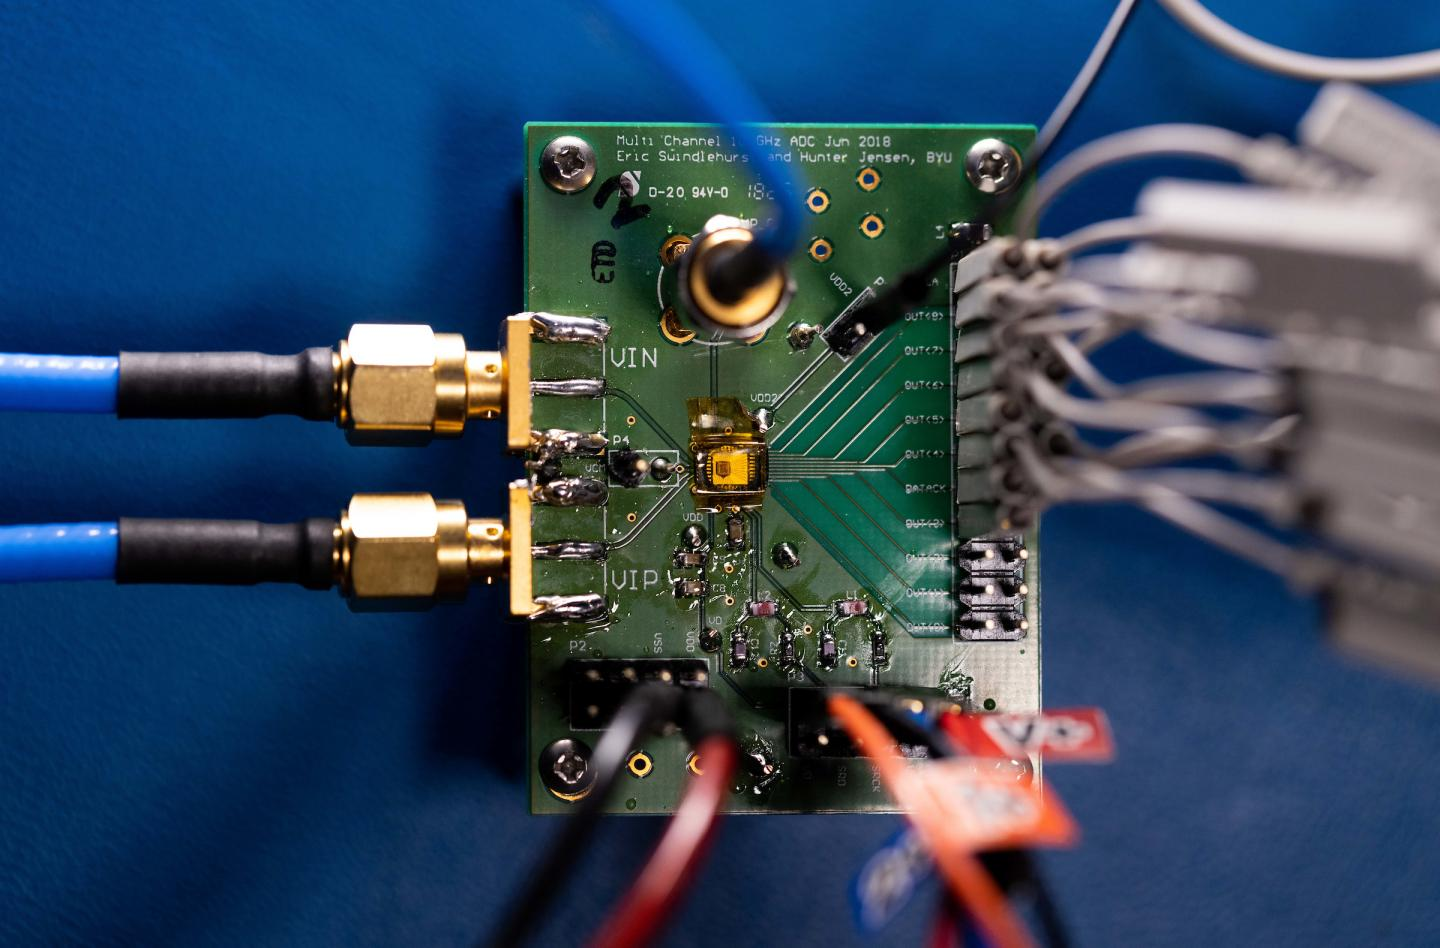 BYU-led research team develops world's most power-efficient ADC microchip